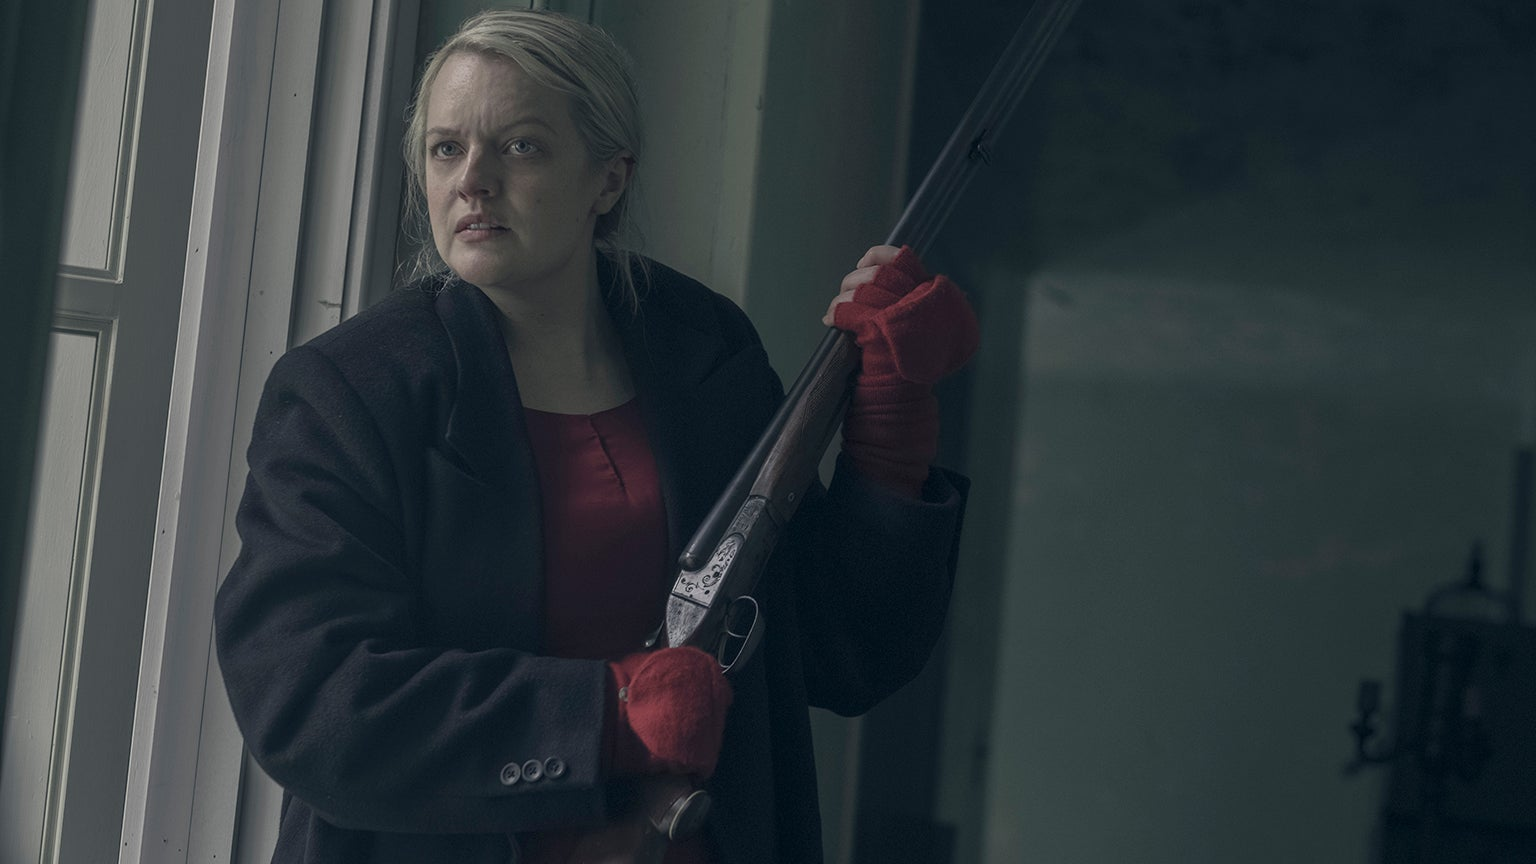 The Handmaid's Tale Season 3 Adds Guest Stars And A Rallying Cry: 'Blessed Be The Fight'